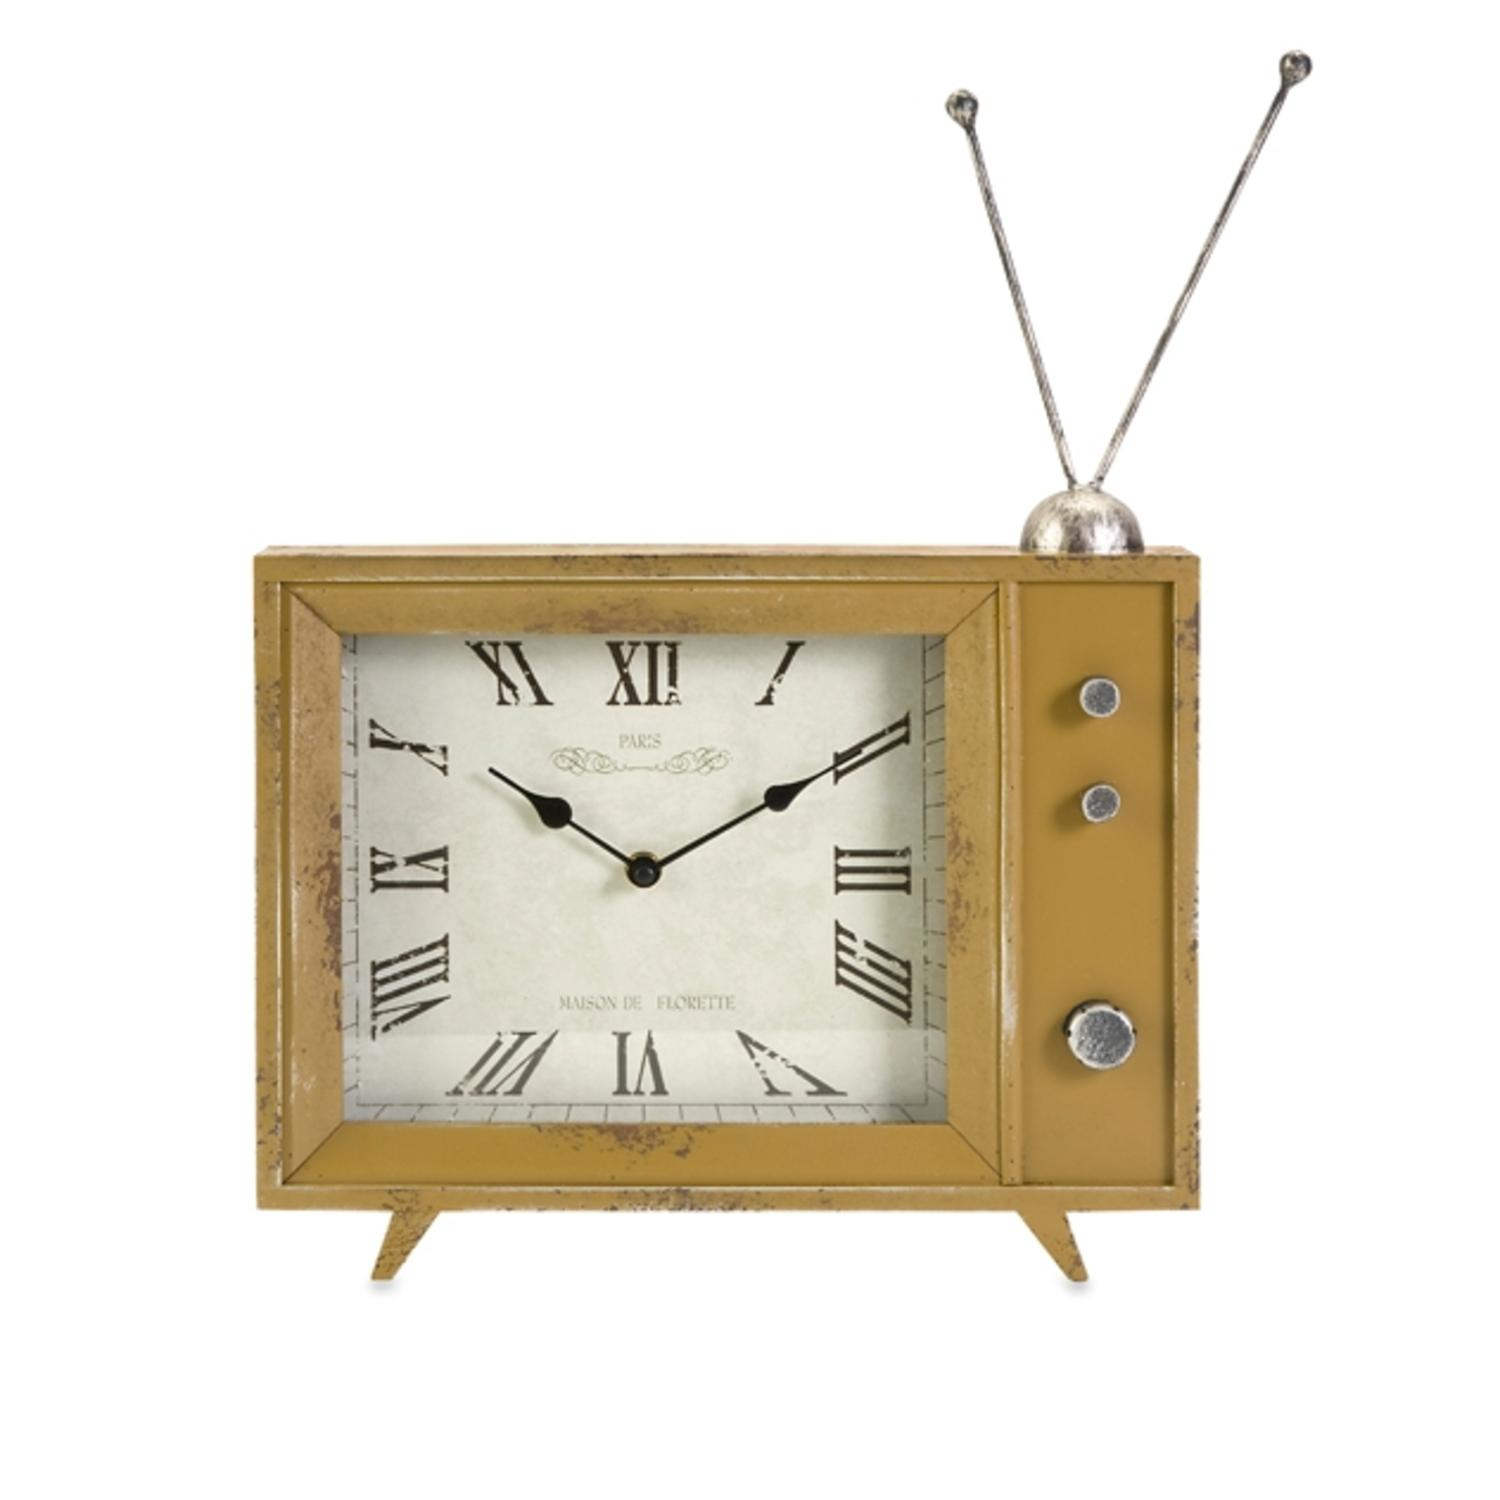 "17.5"" Decorative Retro TV Style Roman Numeral Shelf Clock"